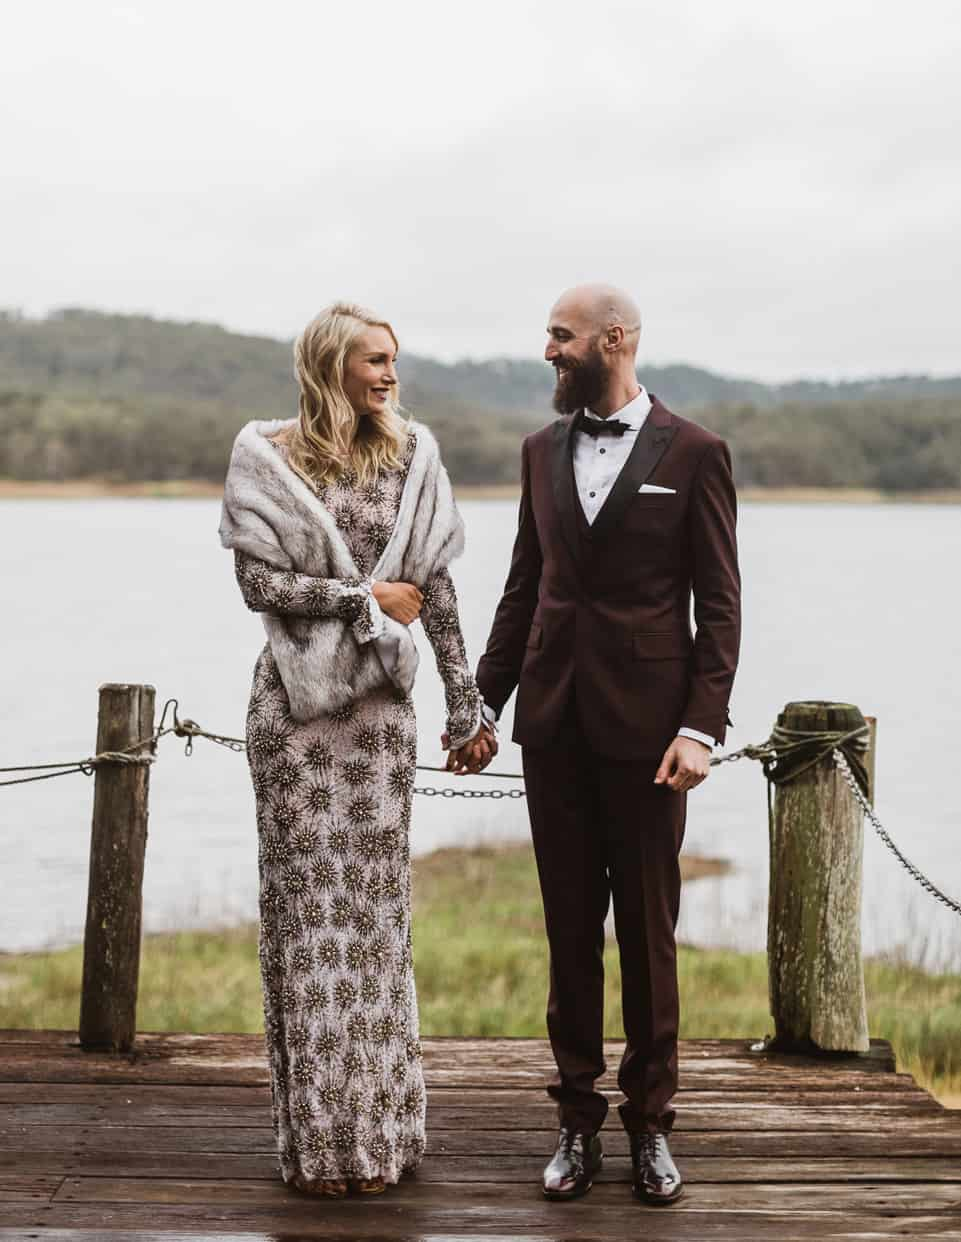 Best groom styles of 2016 - burgundy suit and bow tie